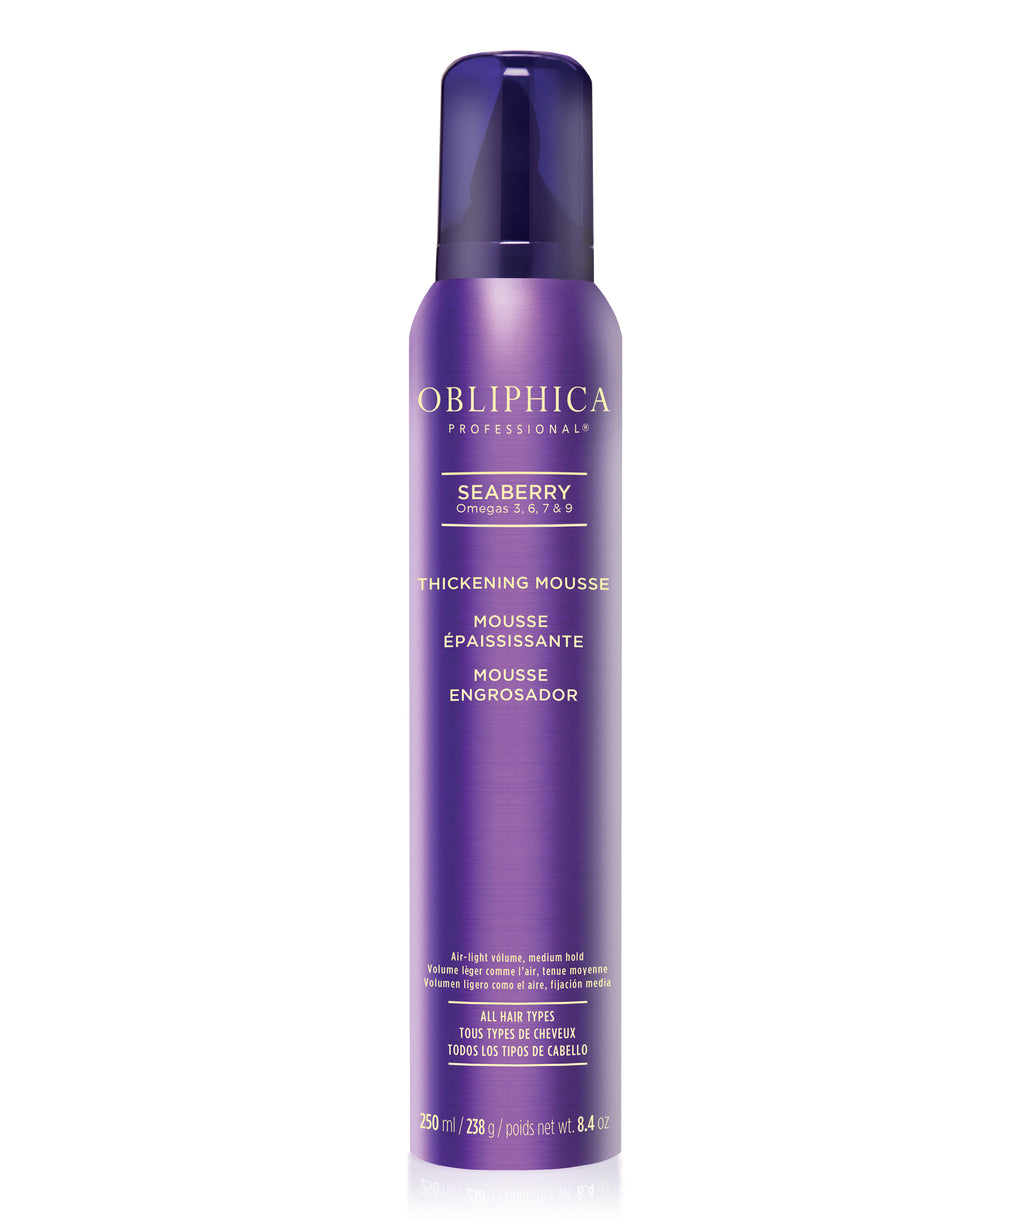 Seaberry Thickening Mousse